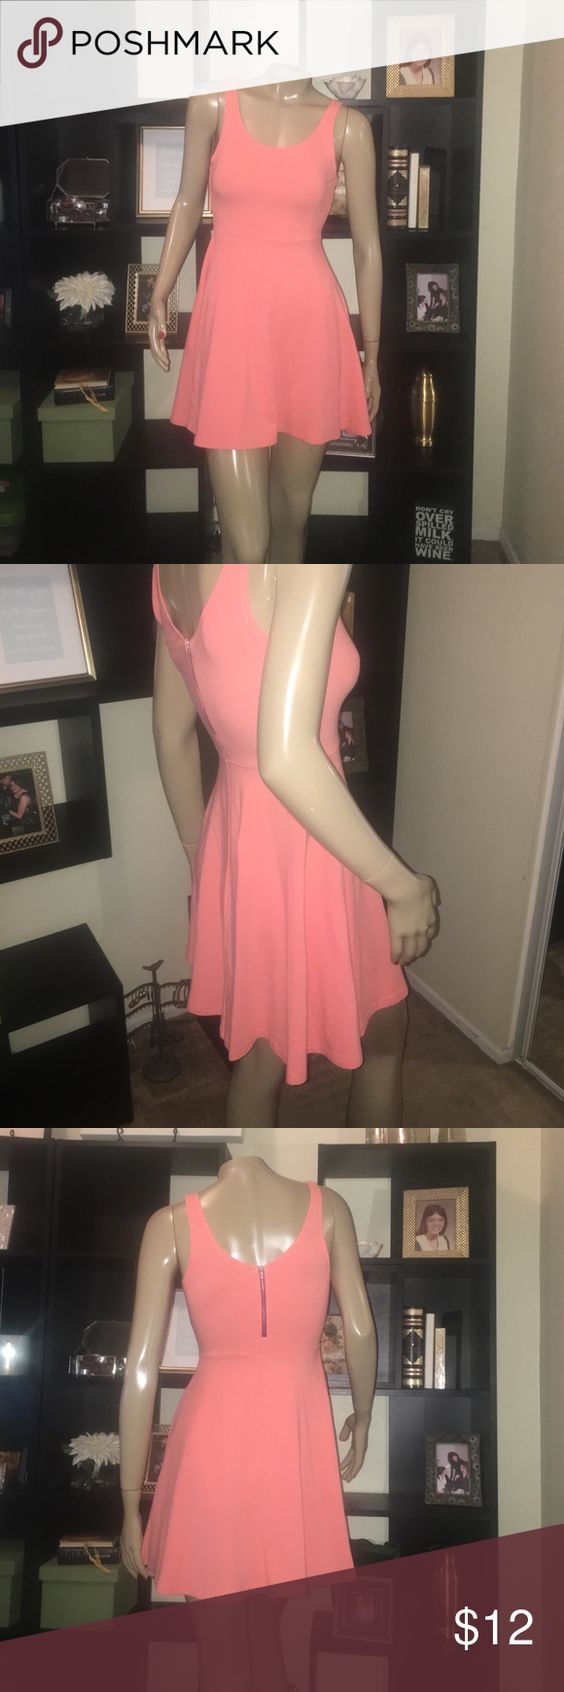 Peach  Express Skater Dress Size small. Worn once. Perfect condition. Peach color and pink zipper. Express Dresses Mini